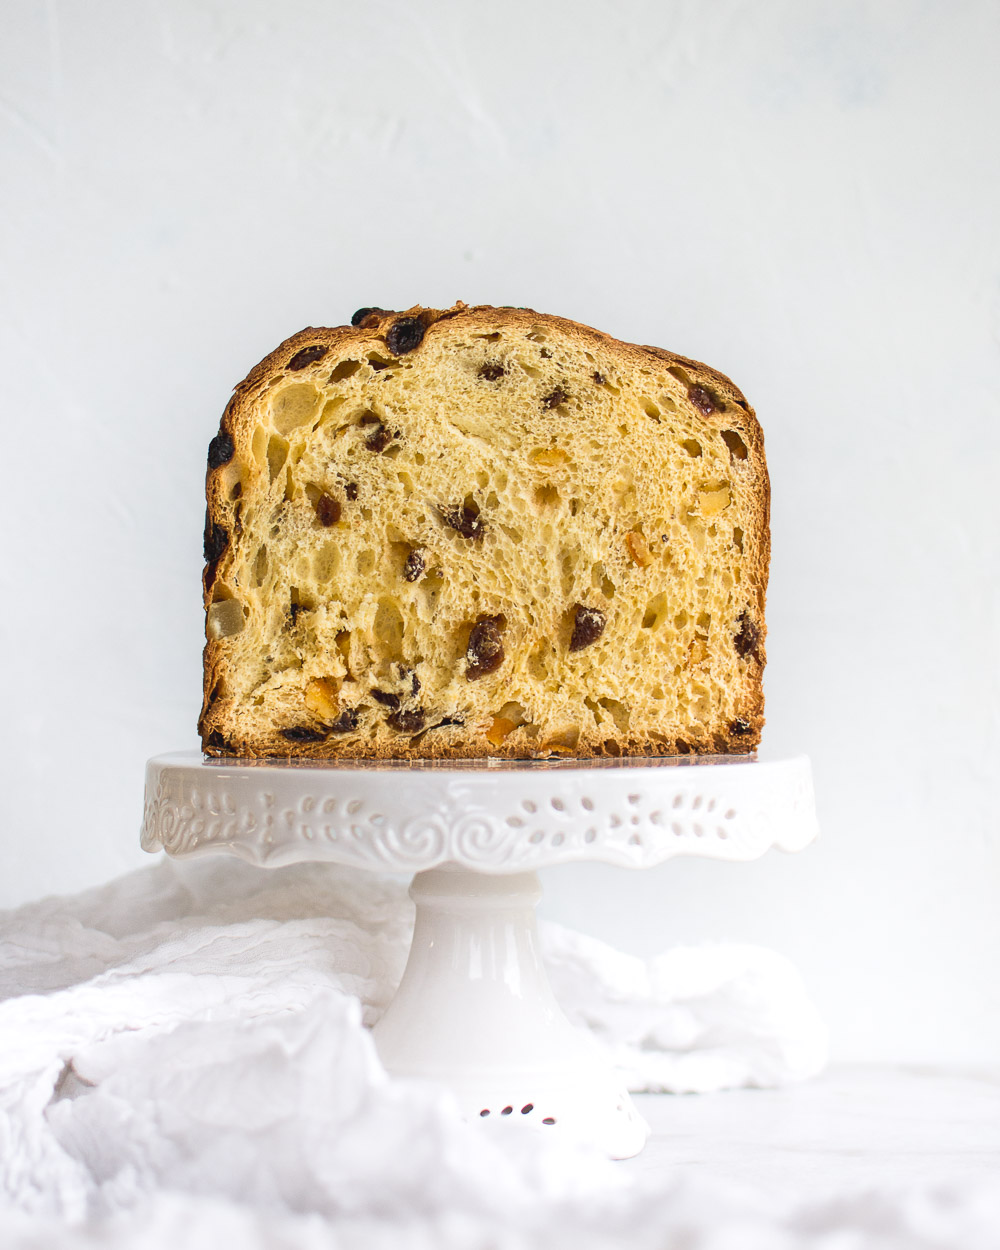 Sourdough Panettone (Einkorn Panettone) made with sultanas, candied fruit and honey.